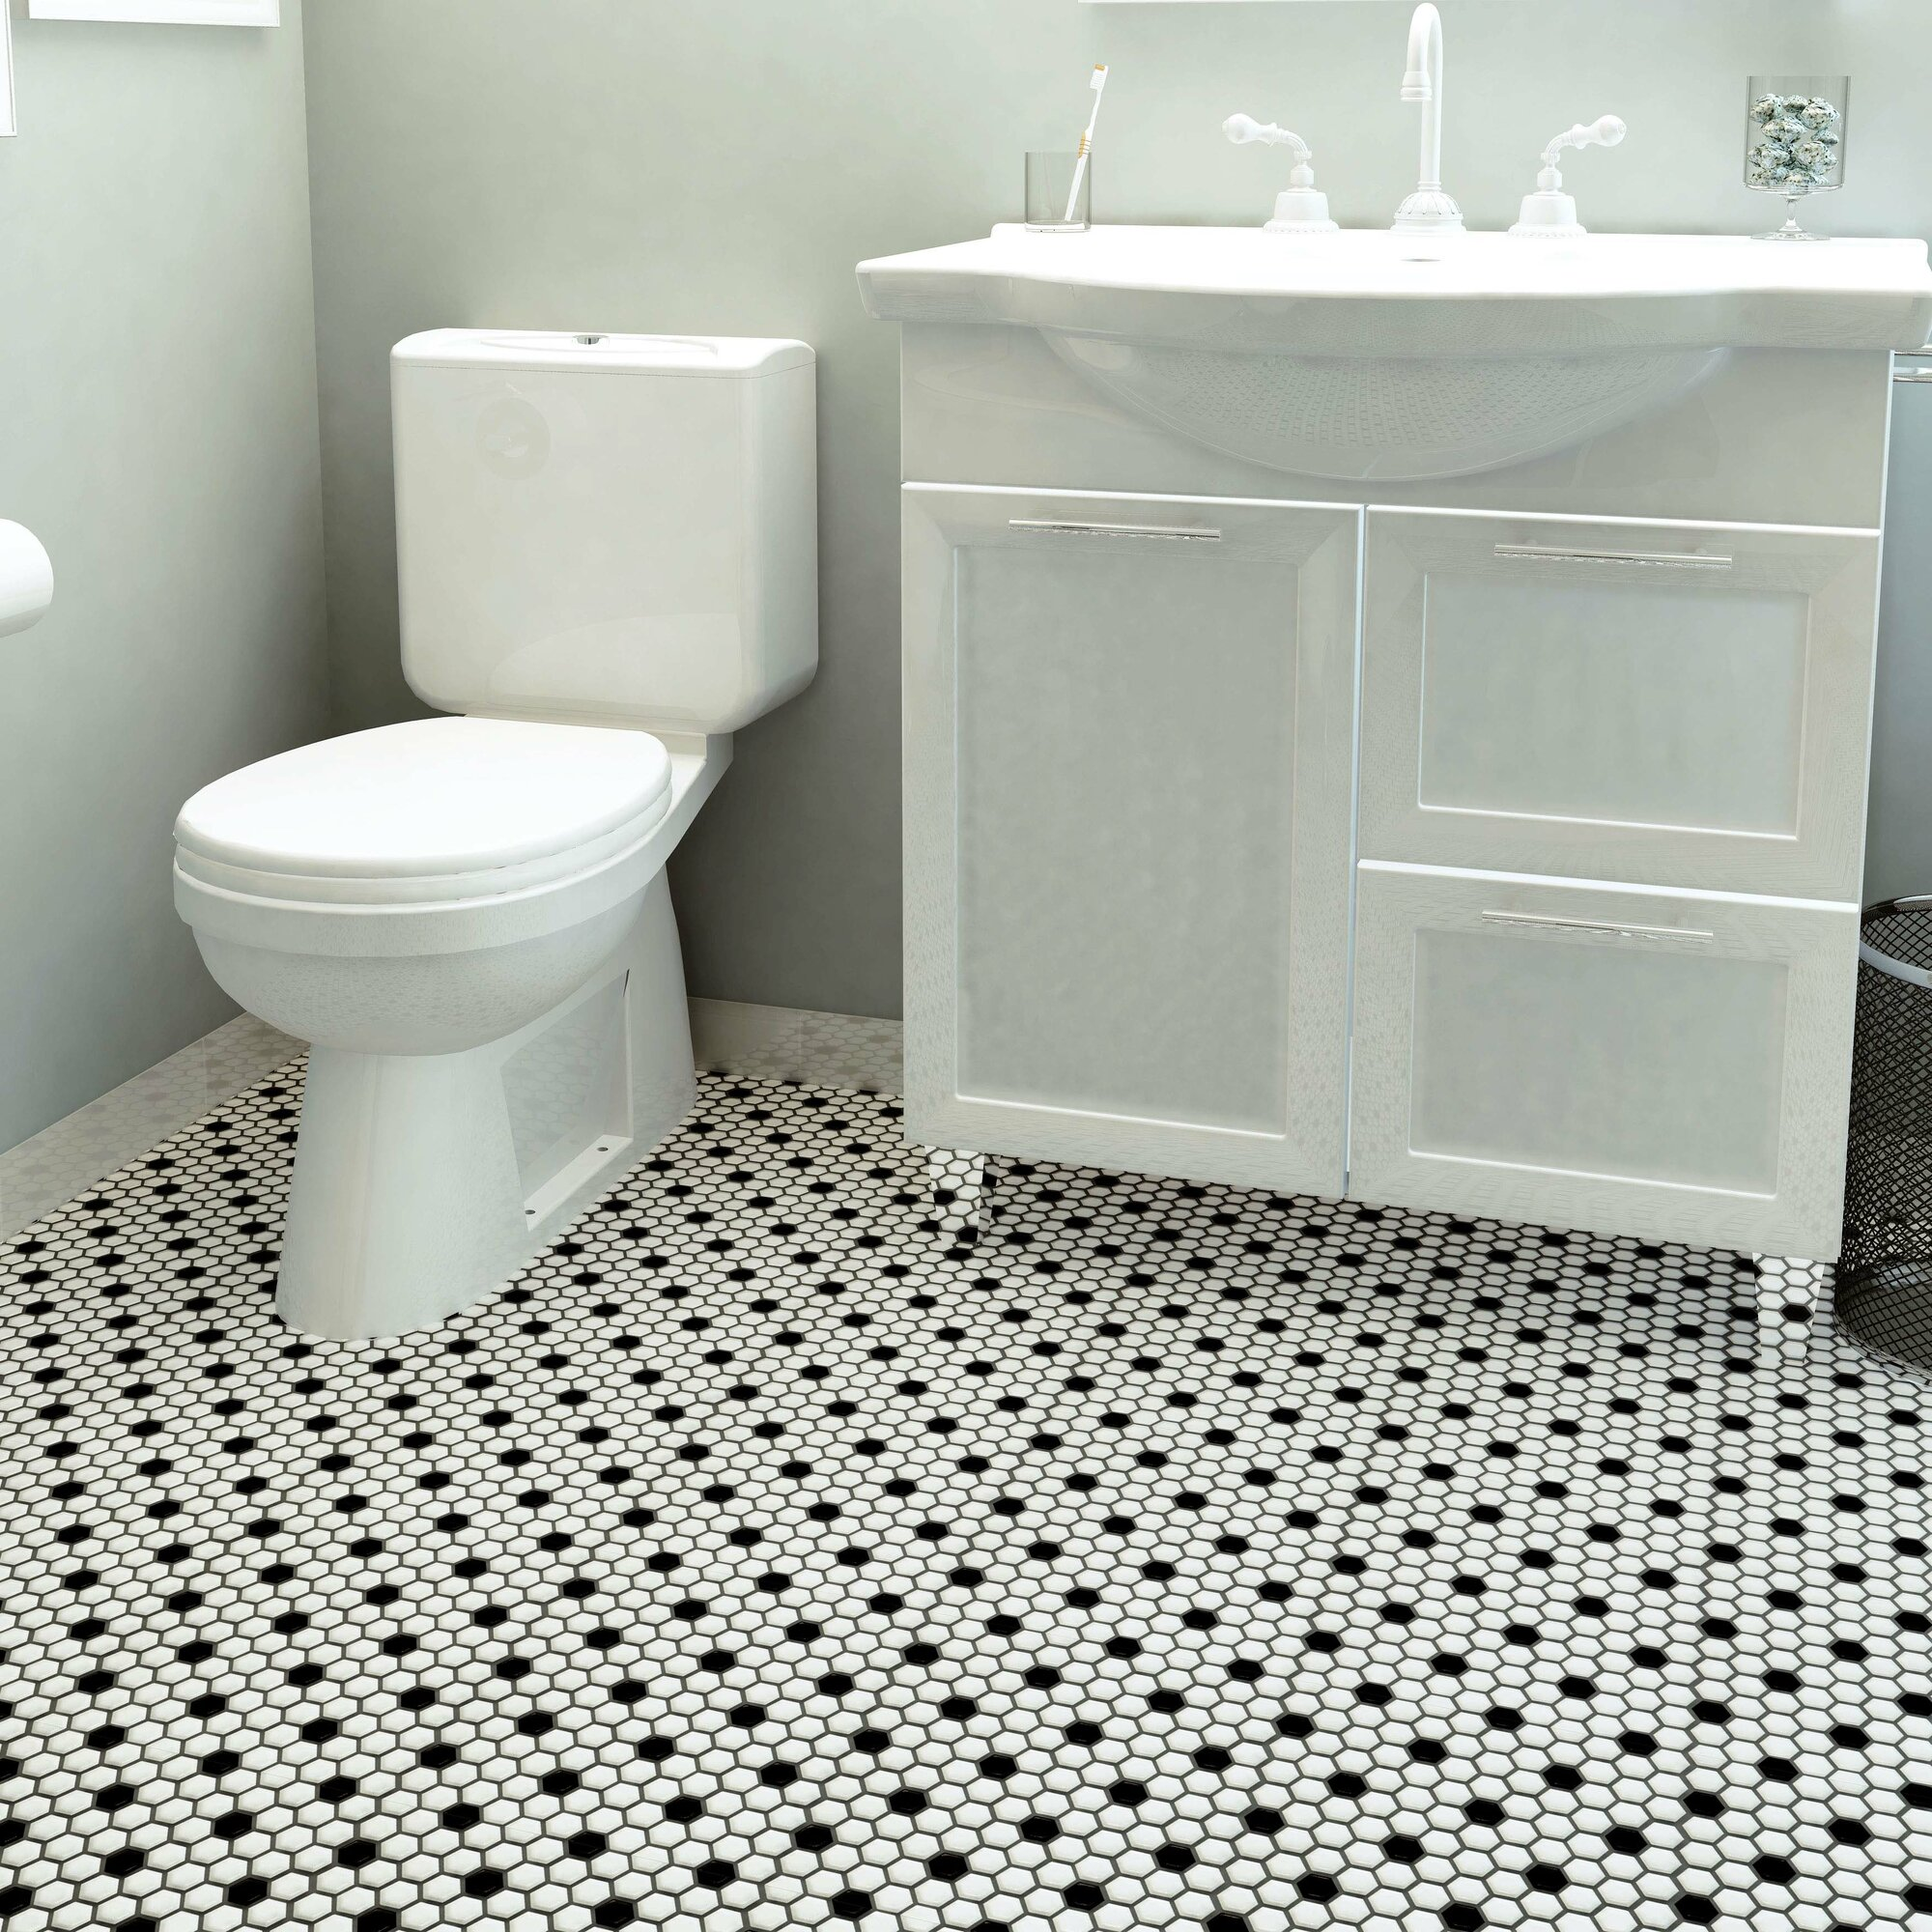 Retro X Hex Porcelain Mosaic Tile In Matte White With Black Dots Reviews Allmodern